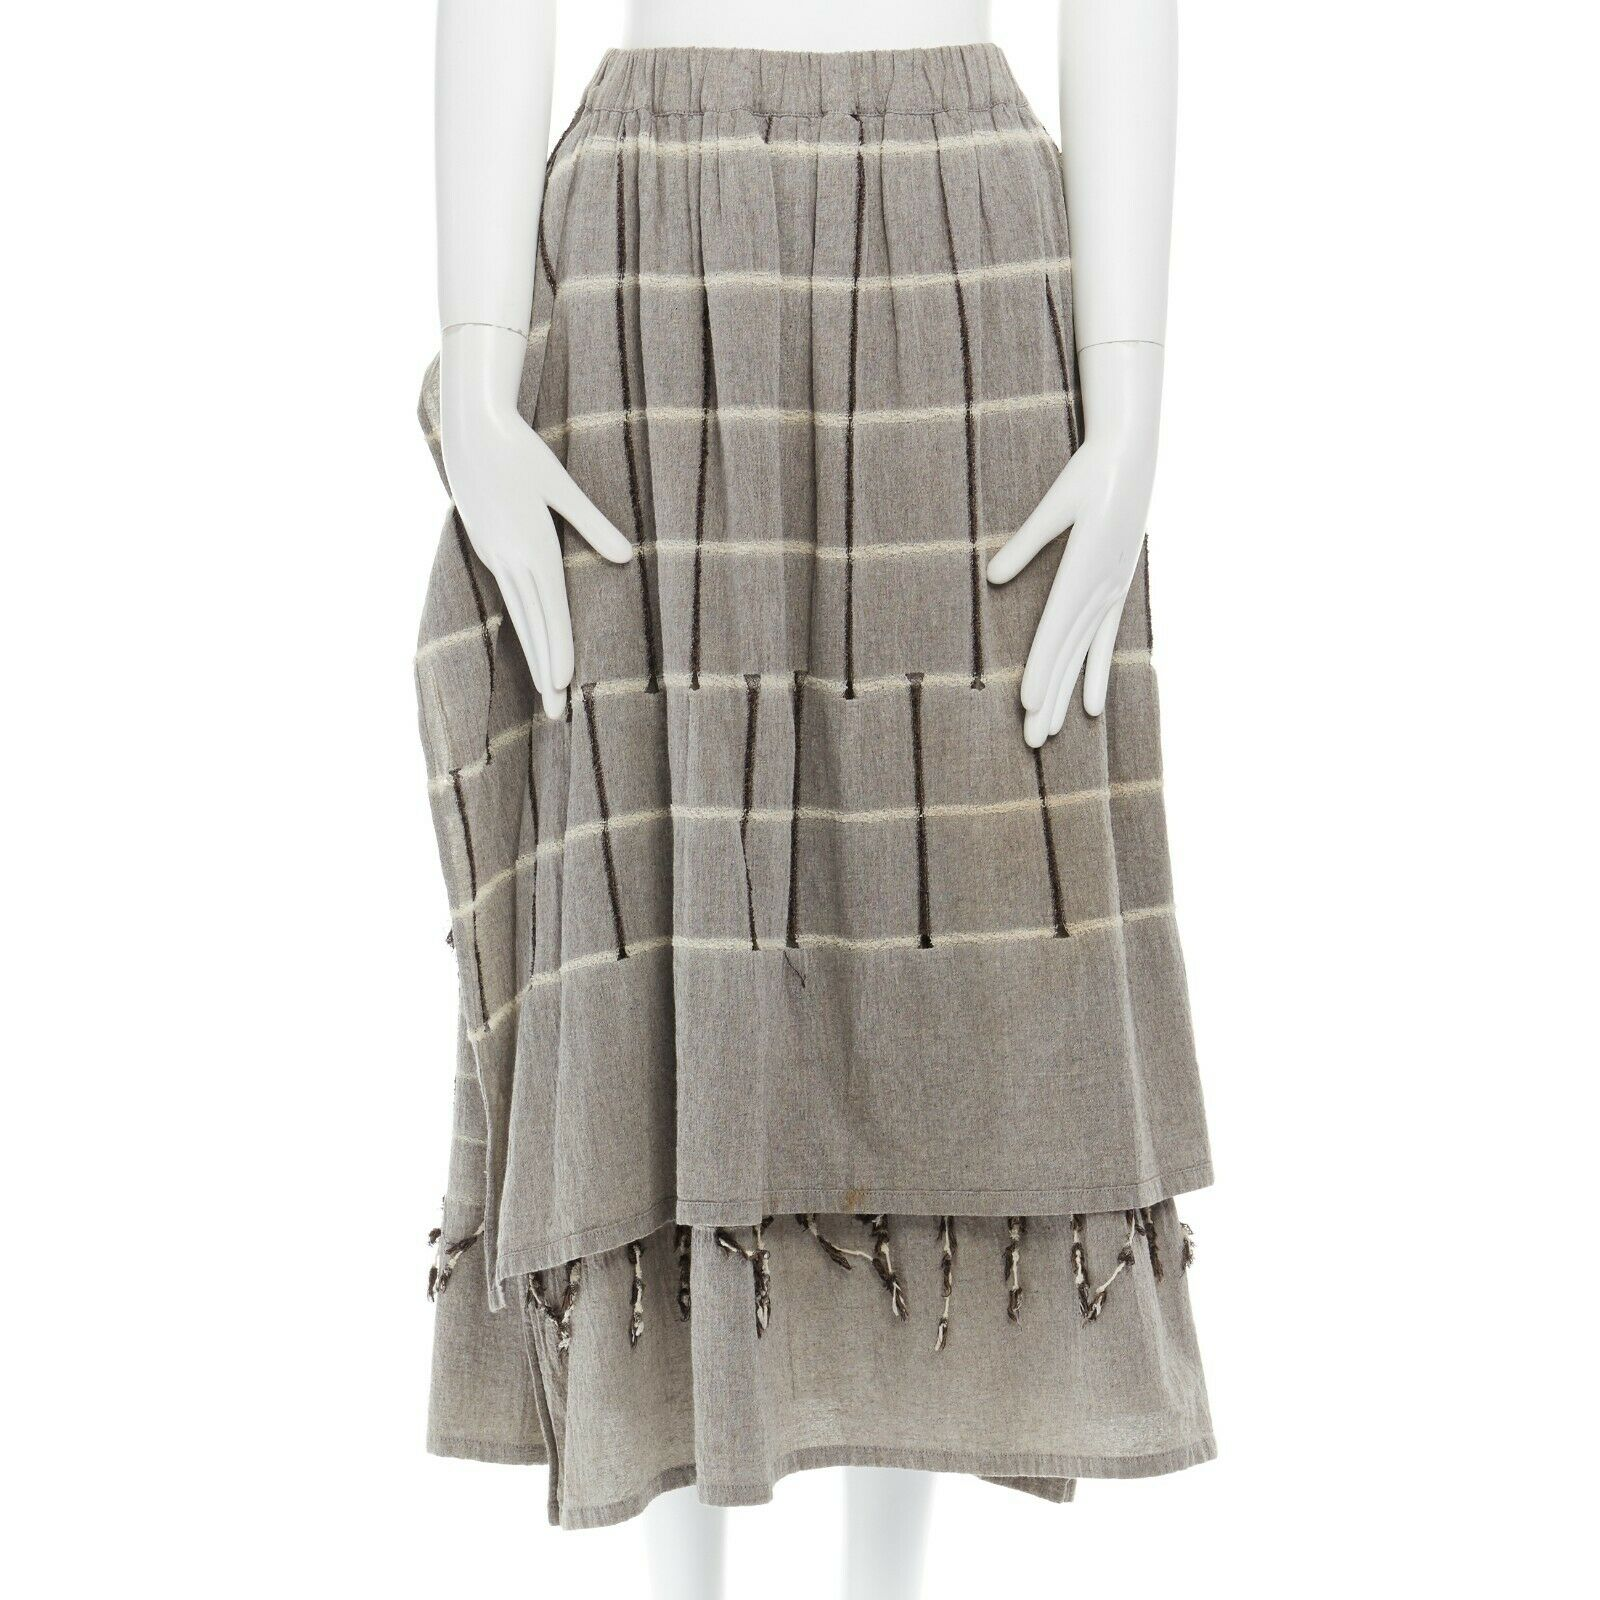 ISSEY MIYAKE Vintage 1980s light grey striped paneled side fringe trim skirt M